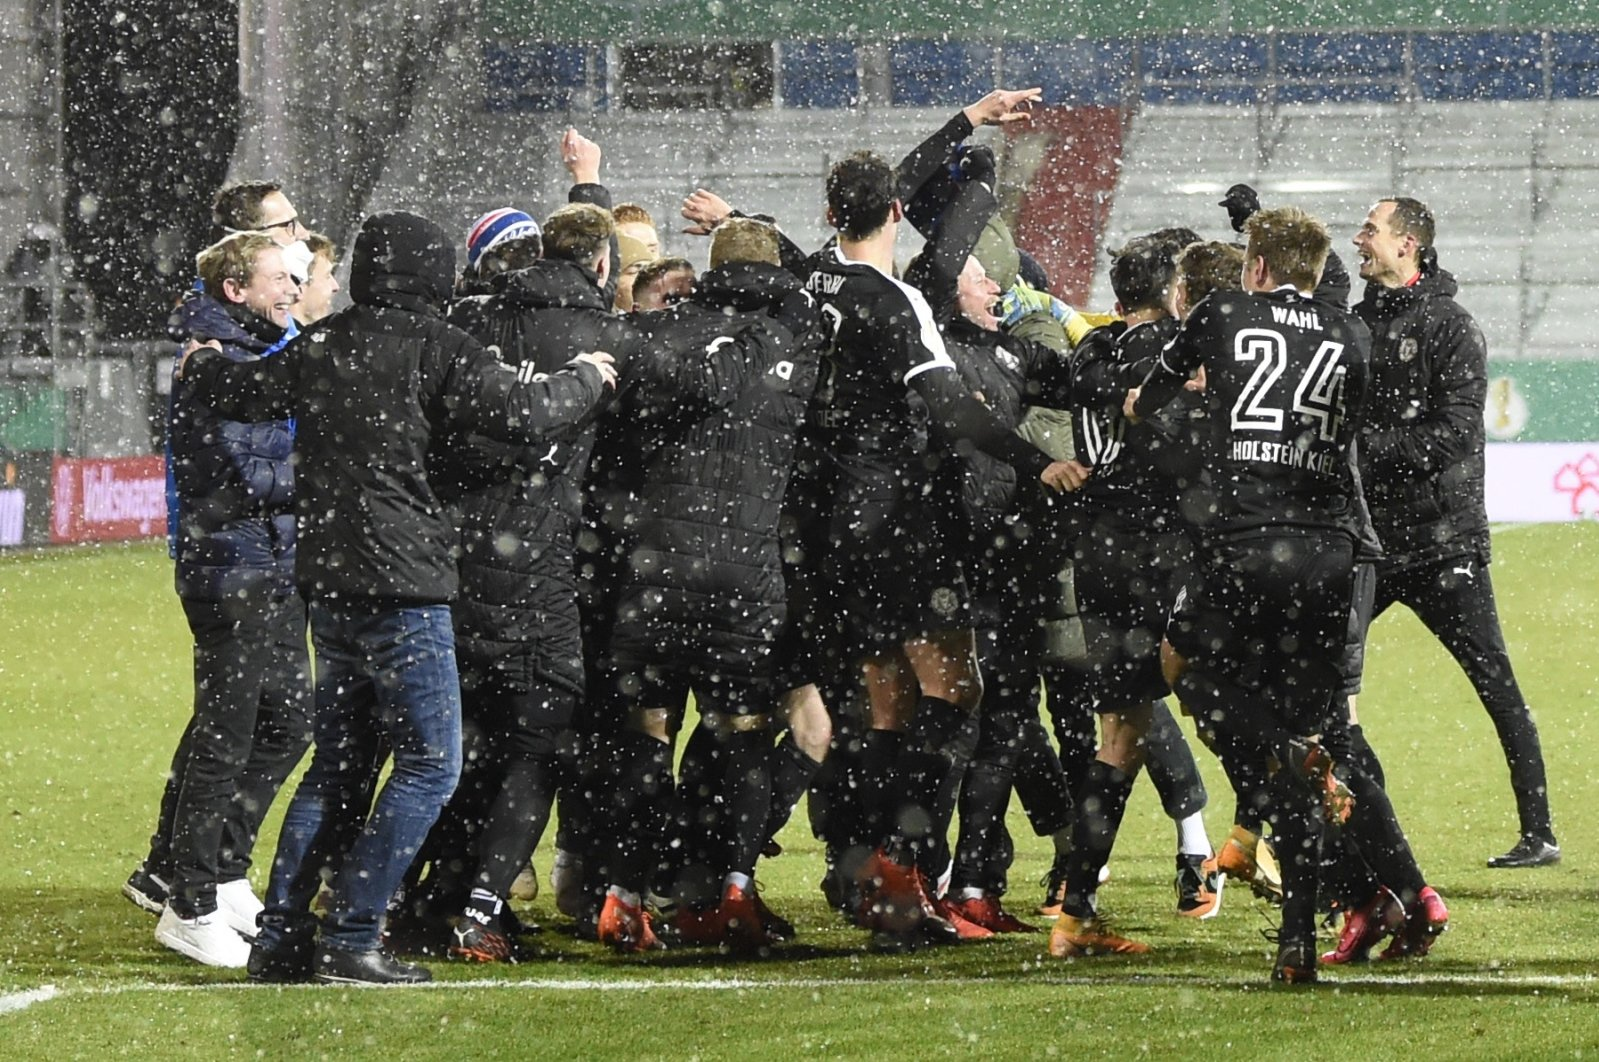 Kiel's players celebrate after beating Bayern Munich during the DFB Cup 2nd round match between Holstein Kiel and Bayern Munich at the Holstein Stadium in Kiel, Germany, Wednesday Jan. 13, 2021. (Reuters Photo)